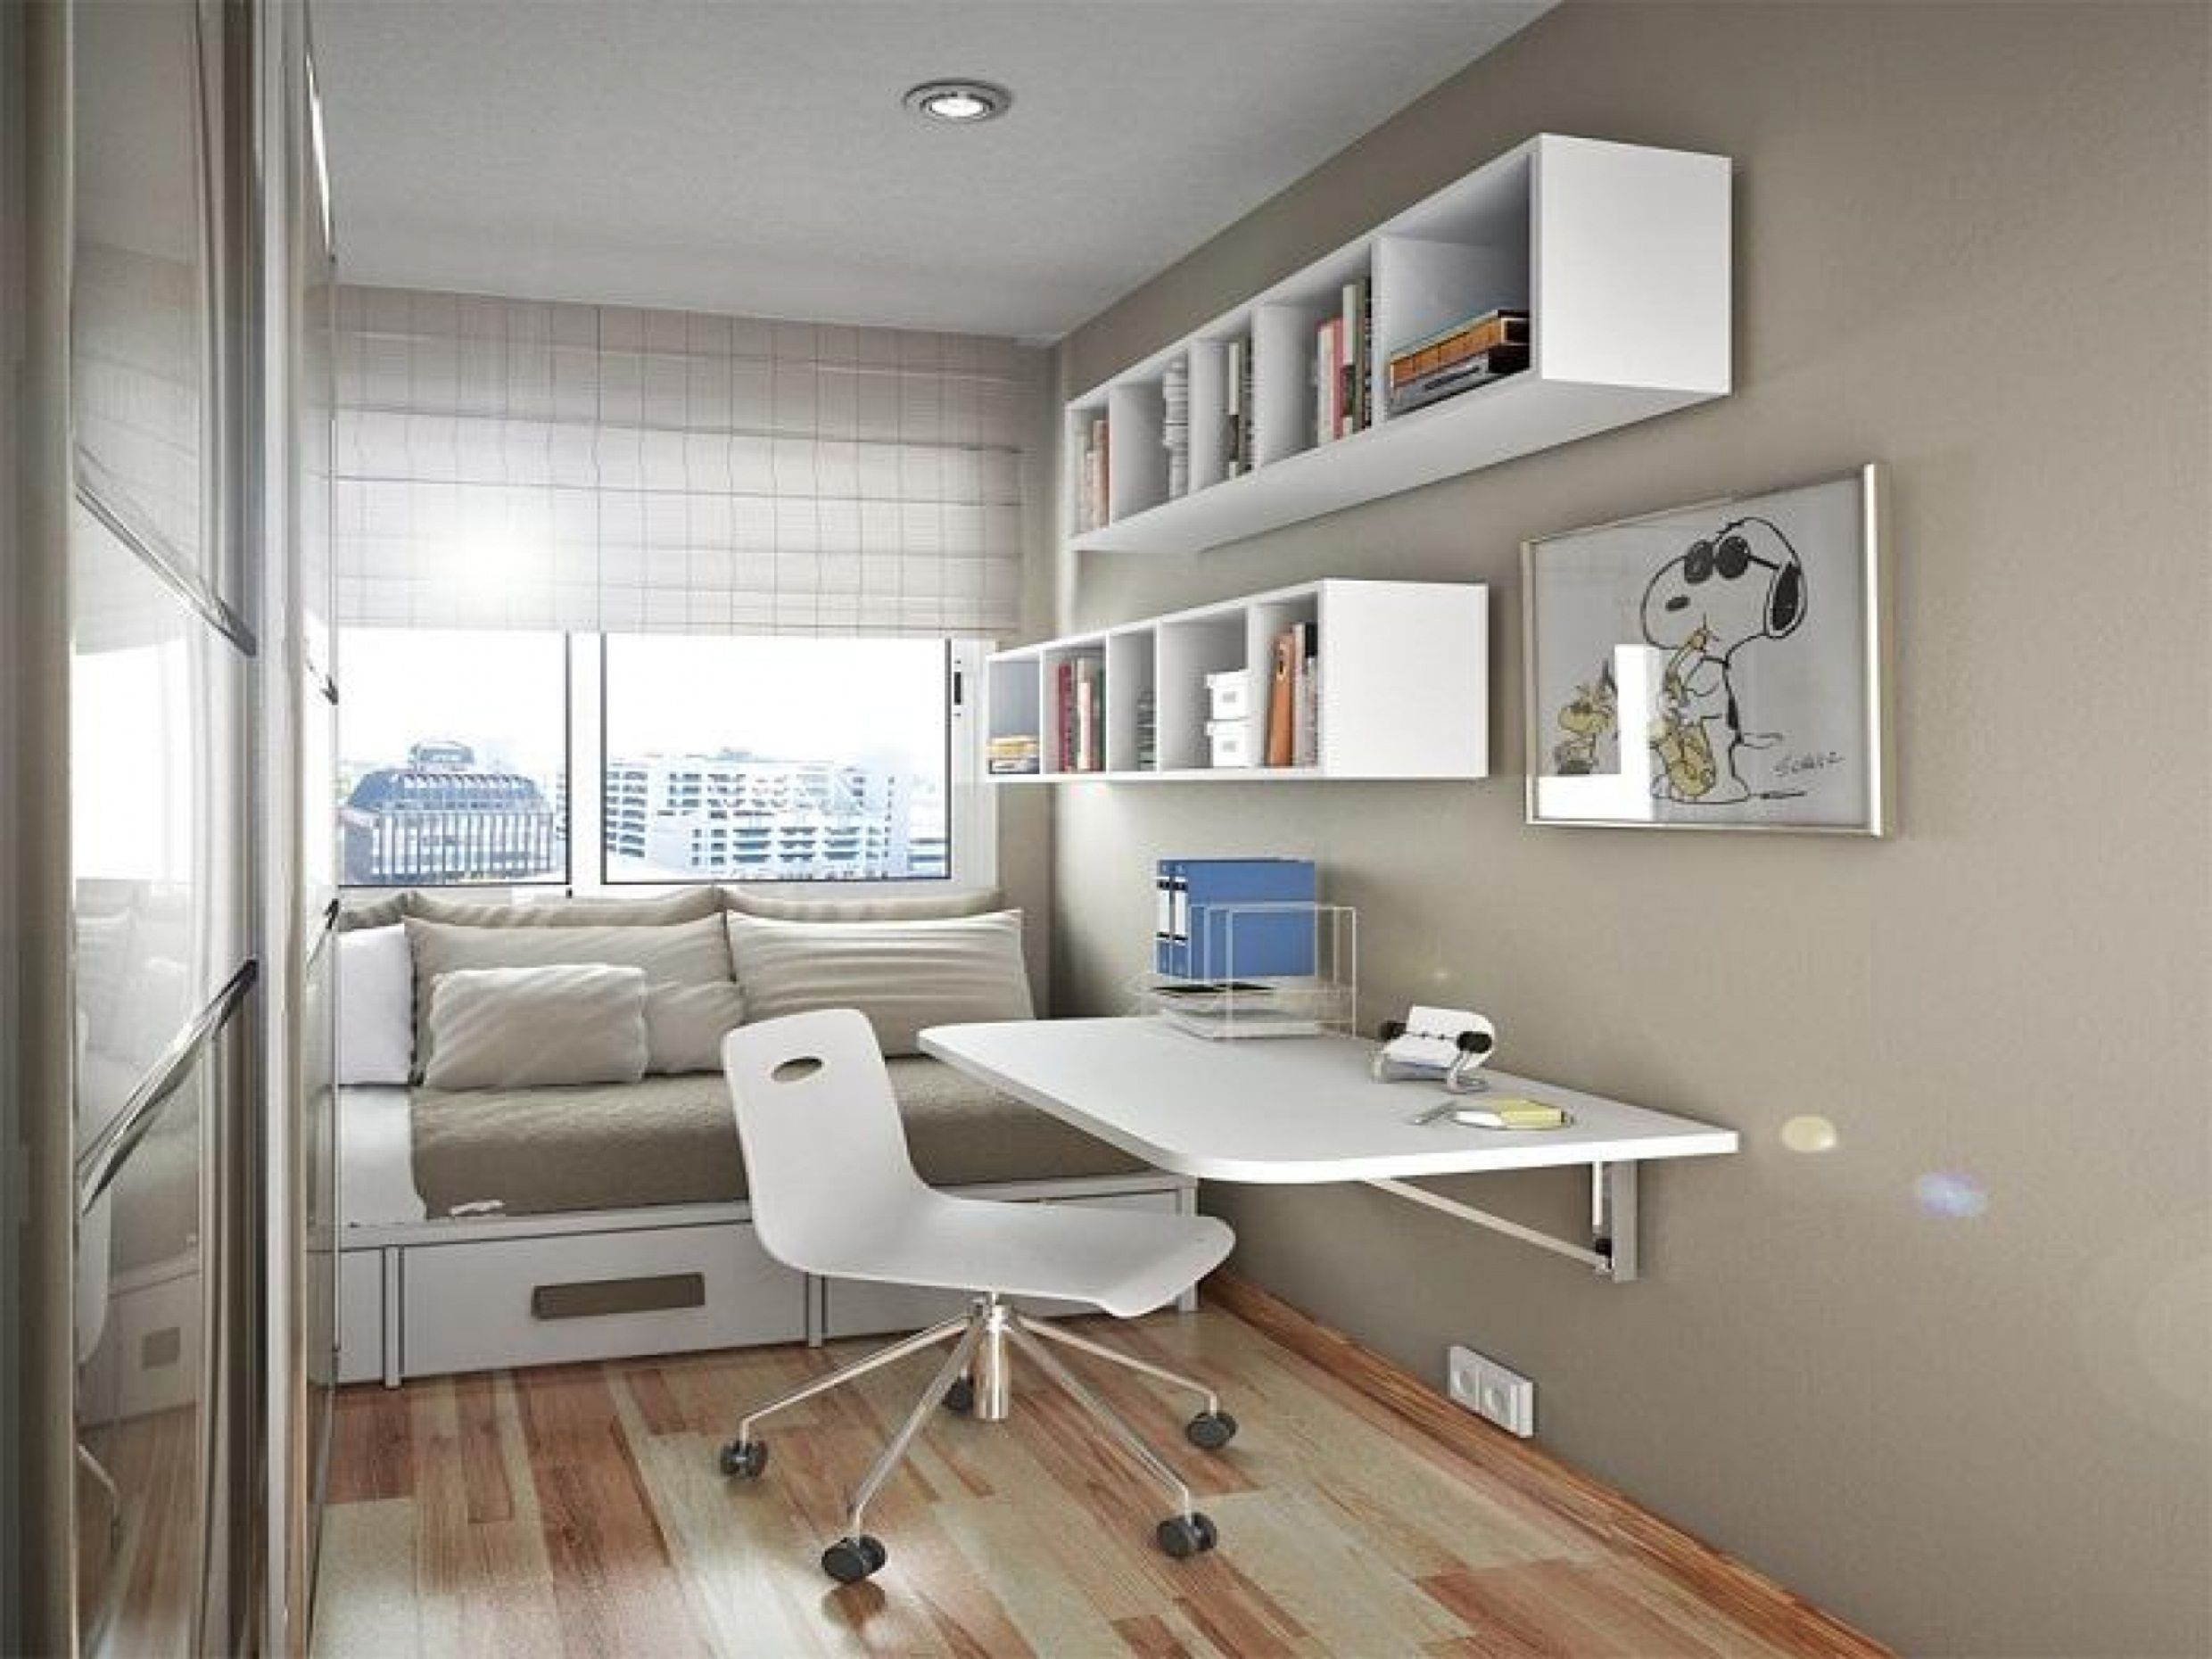 Bedroom Desk Furniture Model Plans wall mounted desk plans - google search | cabinets | pinterest